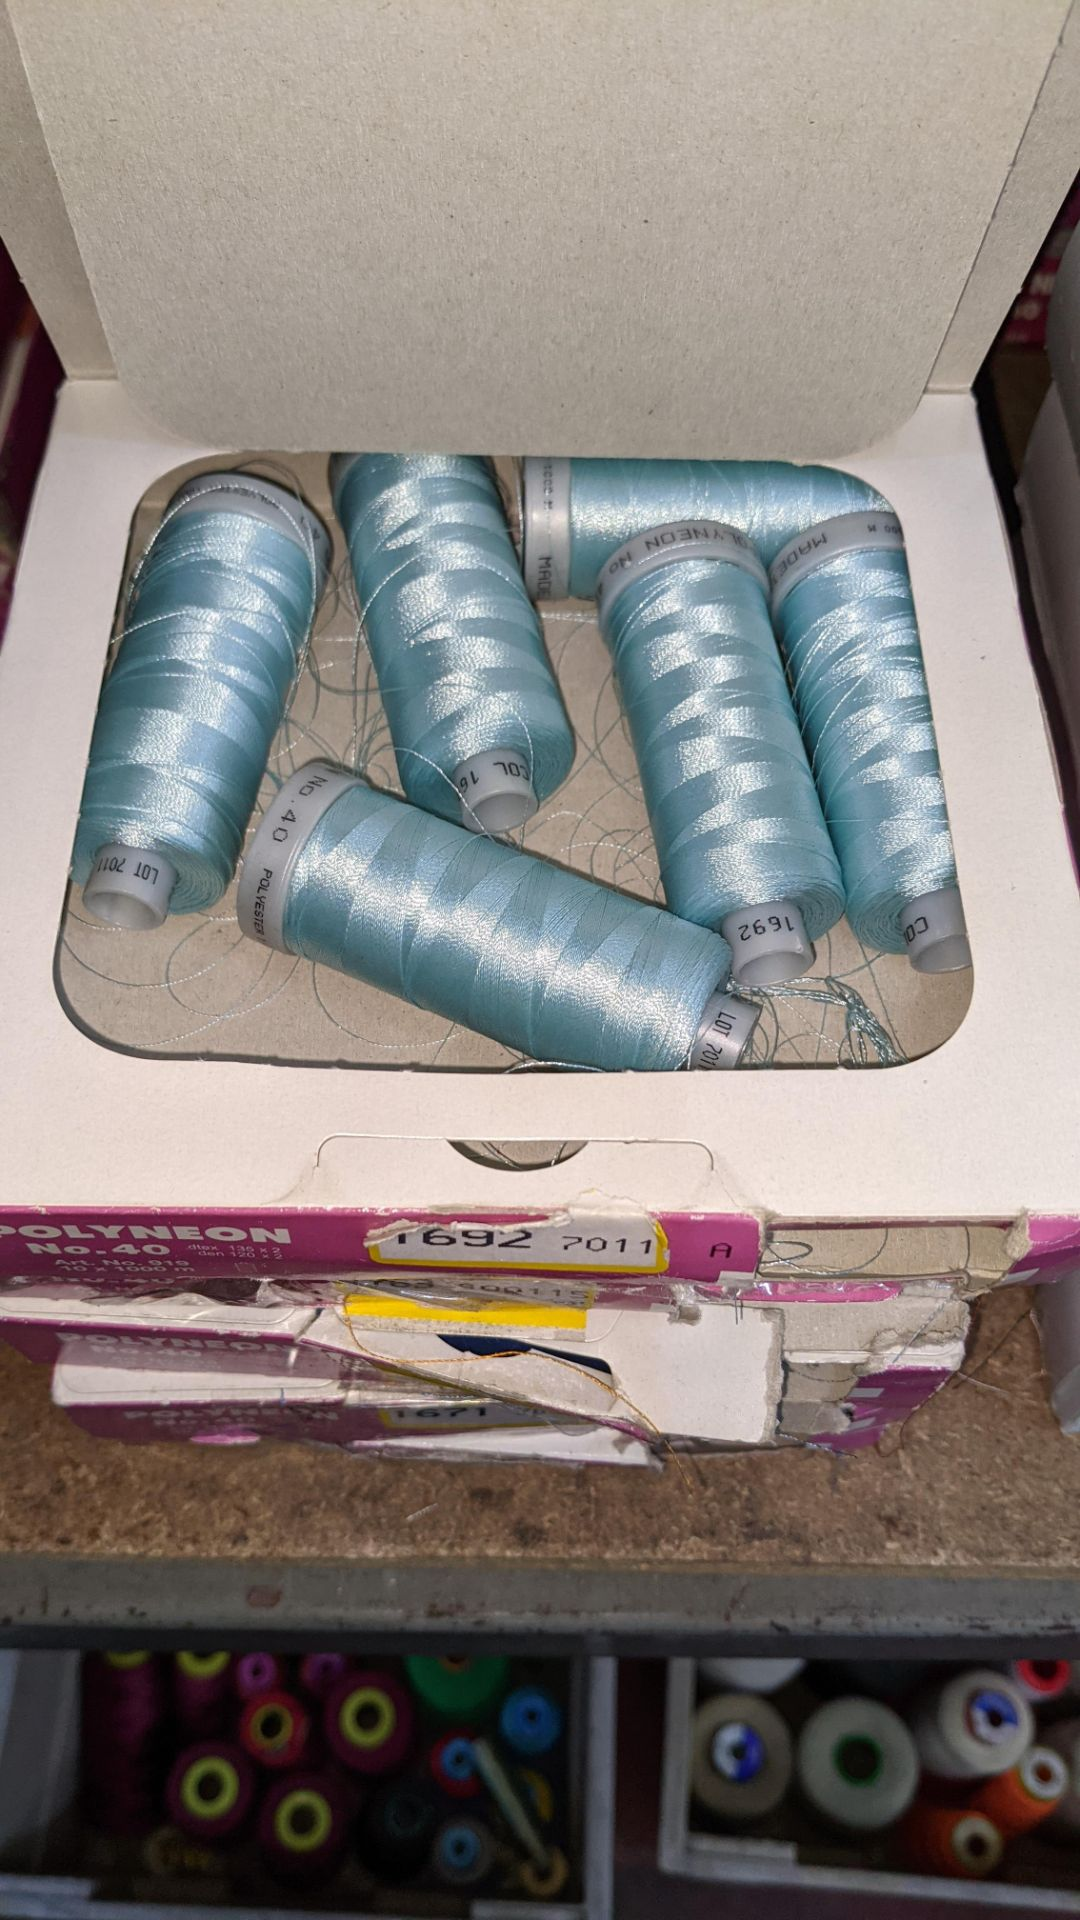 15 boxes of Madeira No. 40 Polyneon embroidery thread - Image 6 of 8